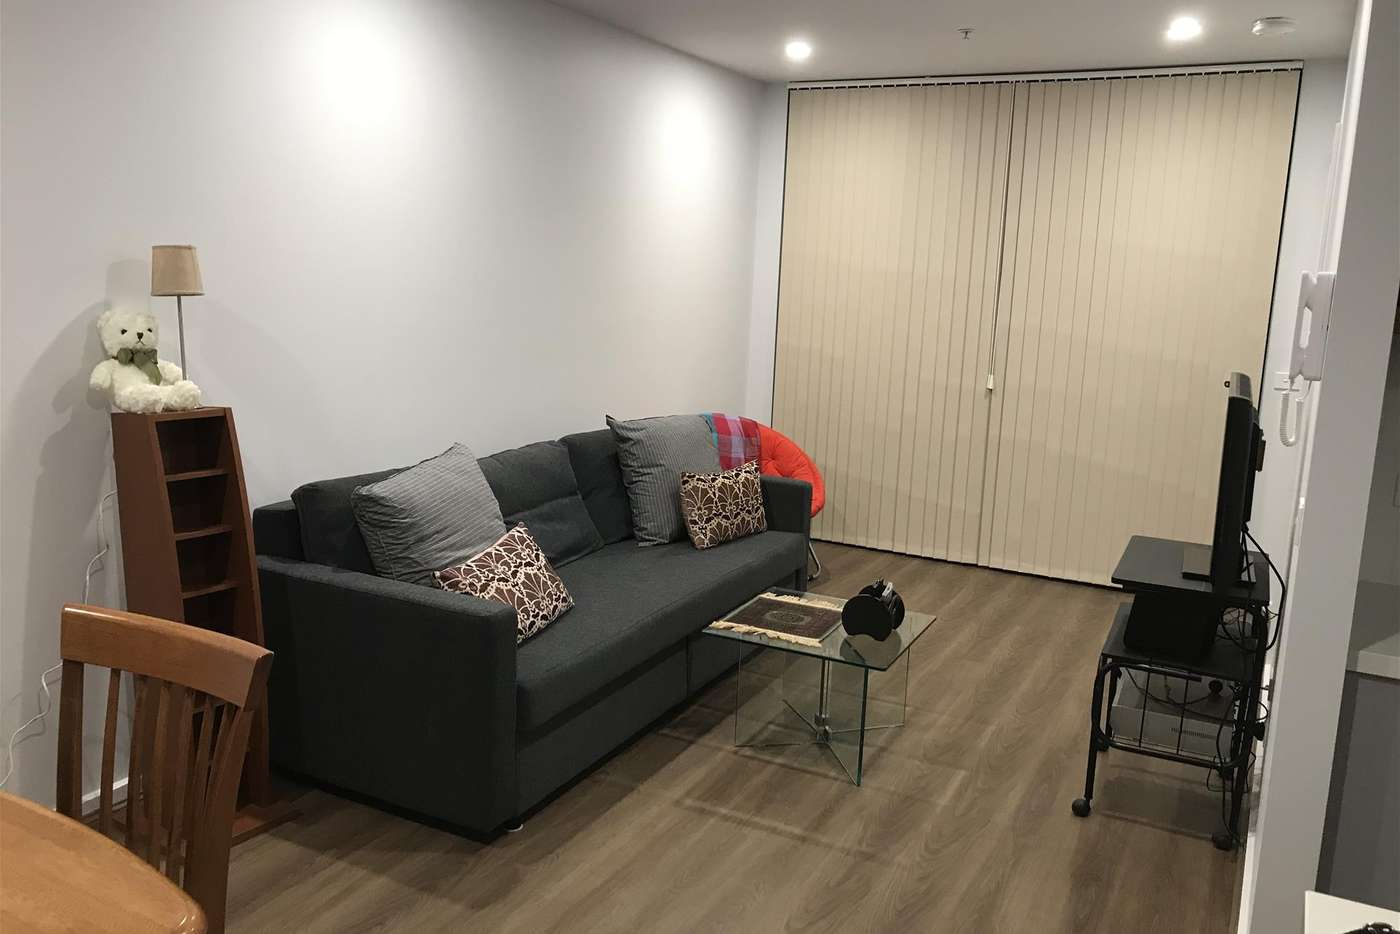 Main view of Homely unit listing, 1001/6 Gribble Street, Gungahlin ACT 2912